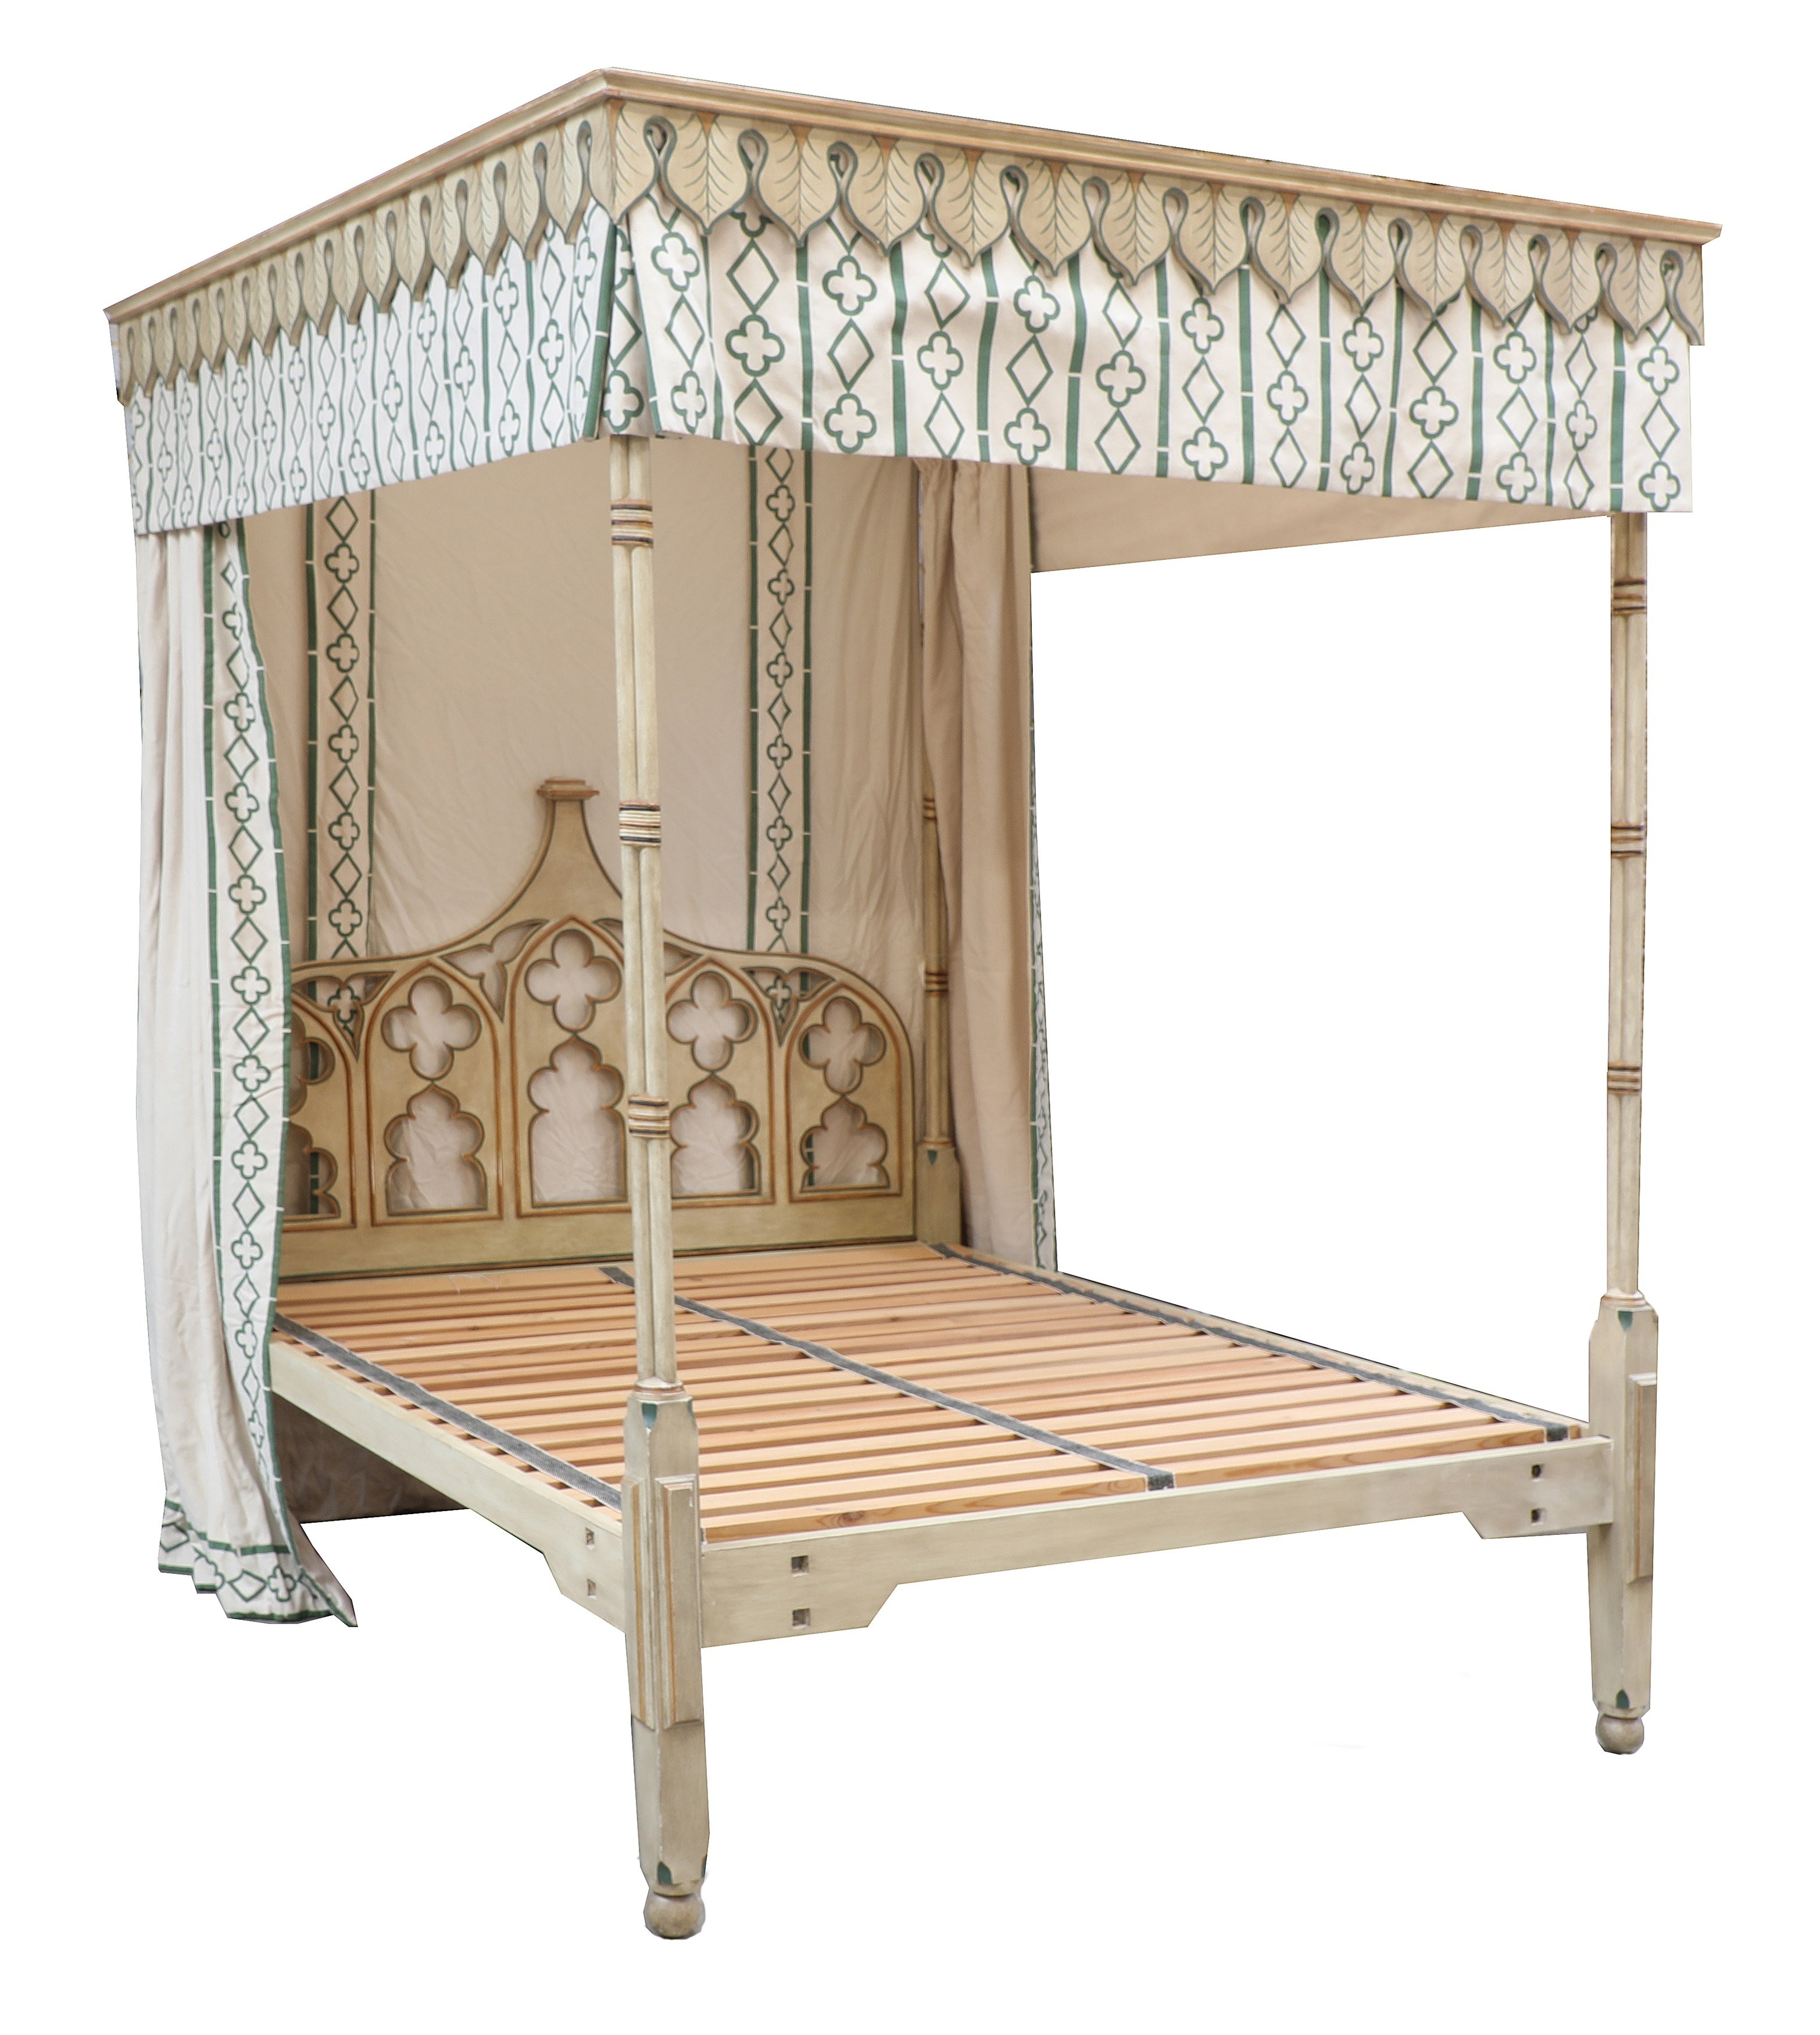 Lot 63 A Gothic Revival Painted Four Poster Bed